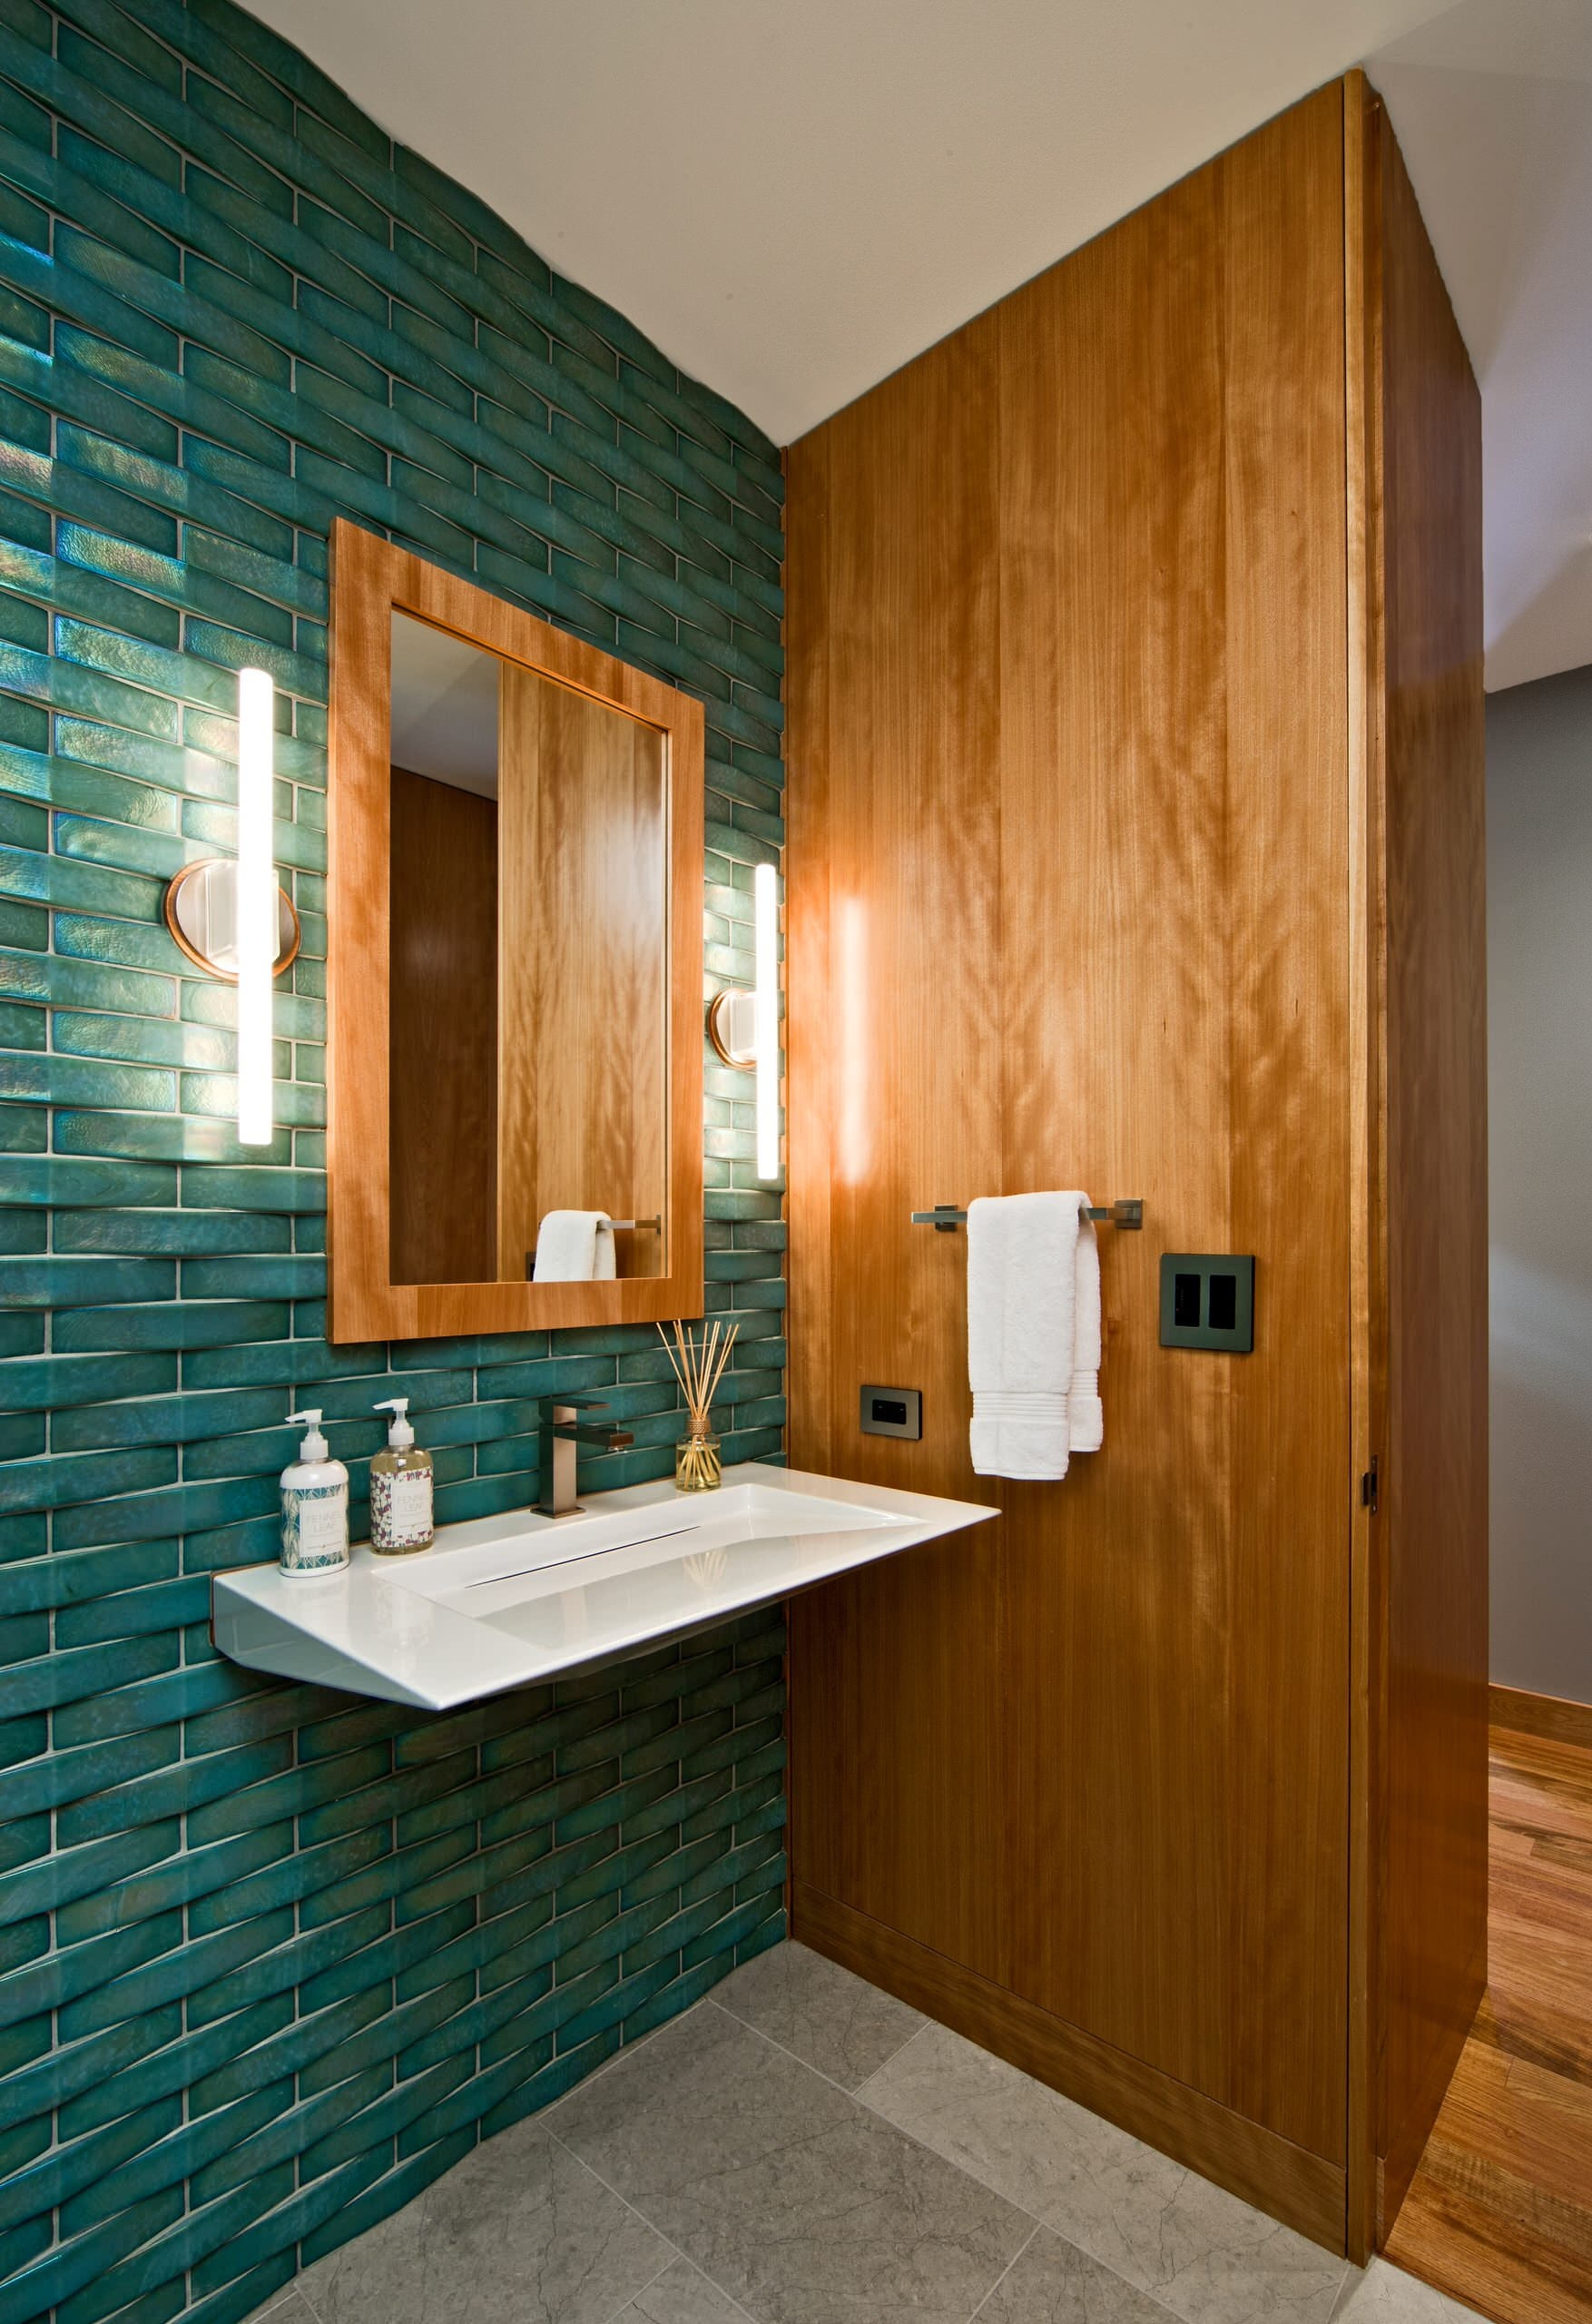 Waterfall Effect With Tiles On Wall Houzz